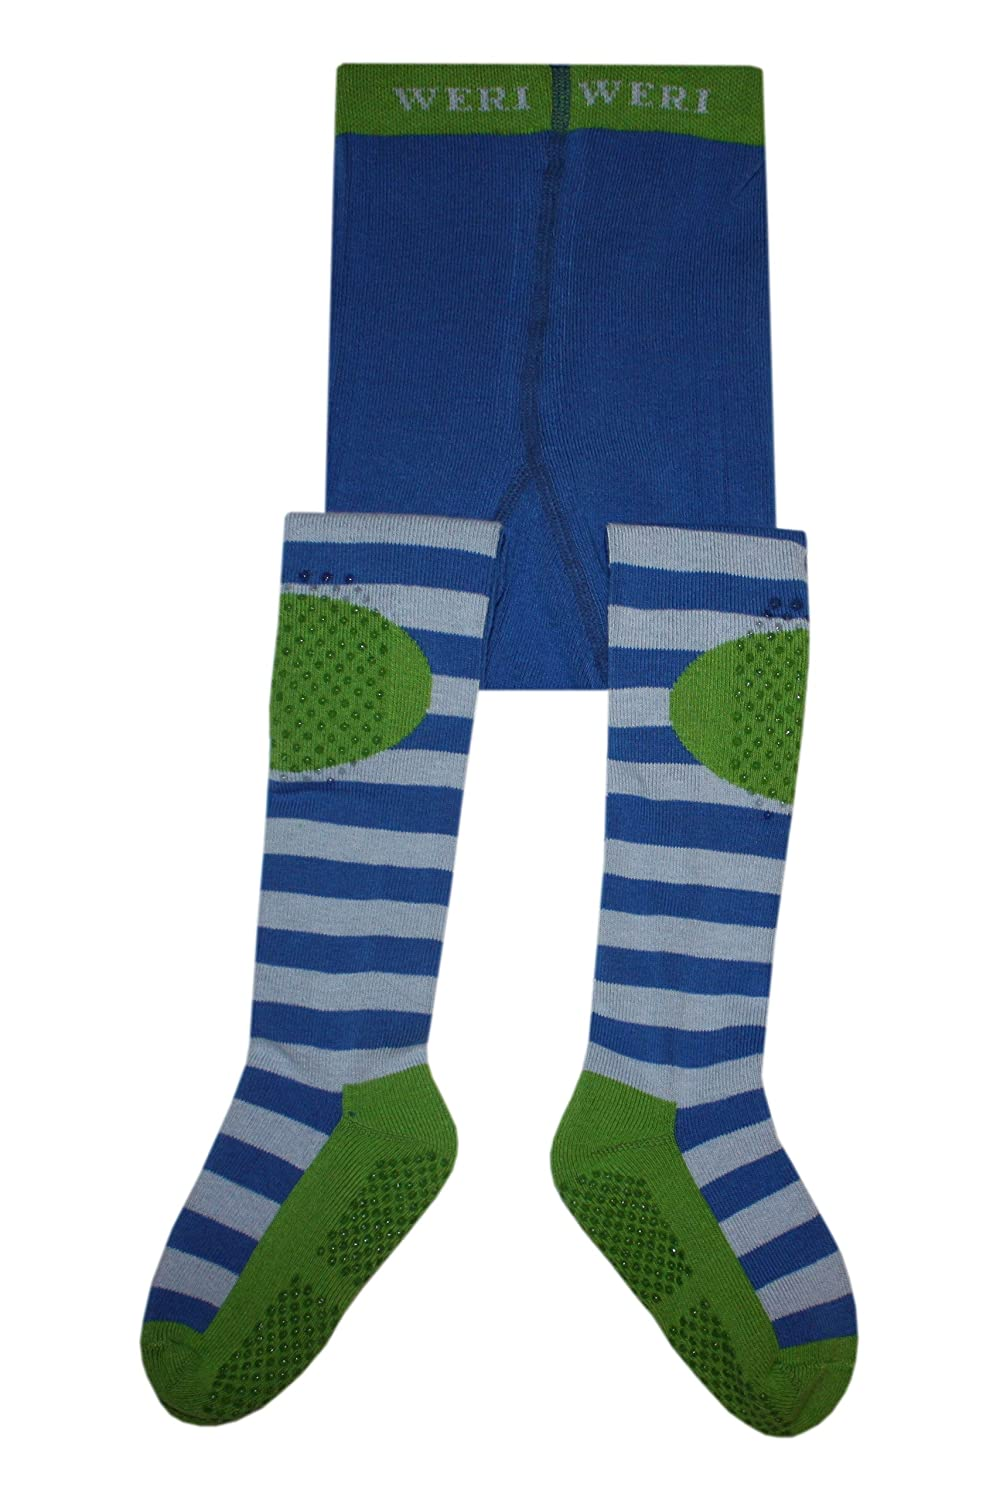 Weri Spezials Unisex-Baby Terry Sole ABS Rings Tights Blue+Kiwi